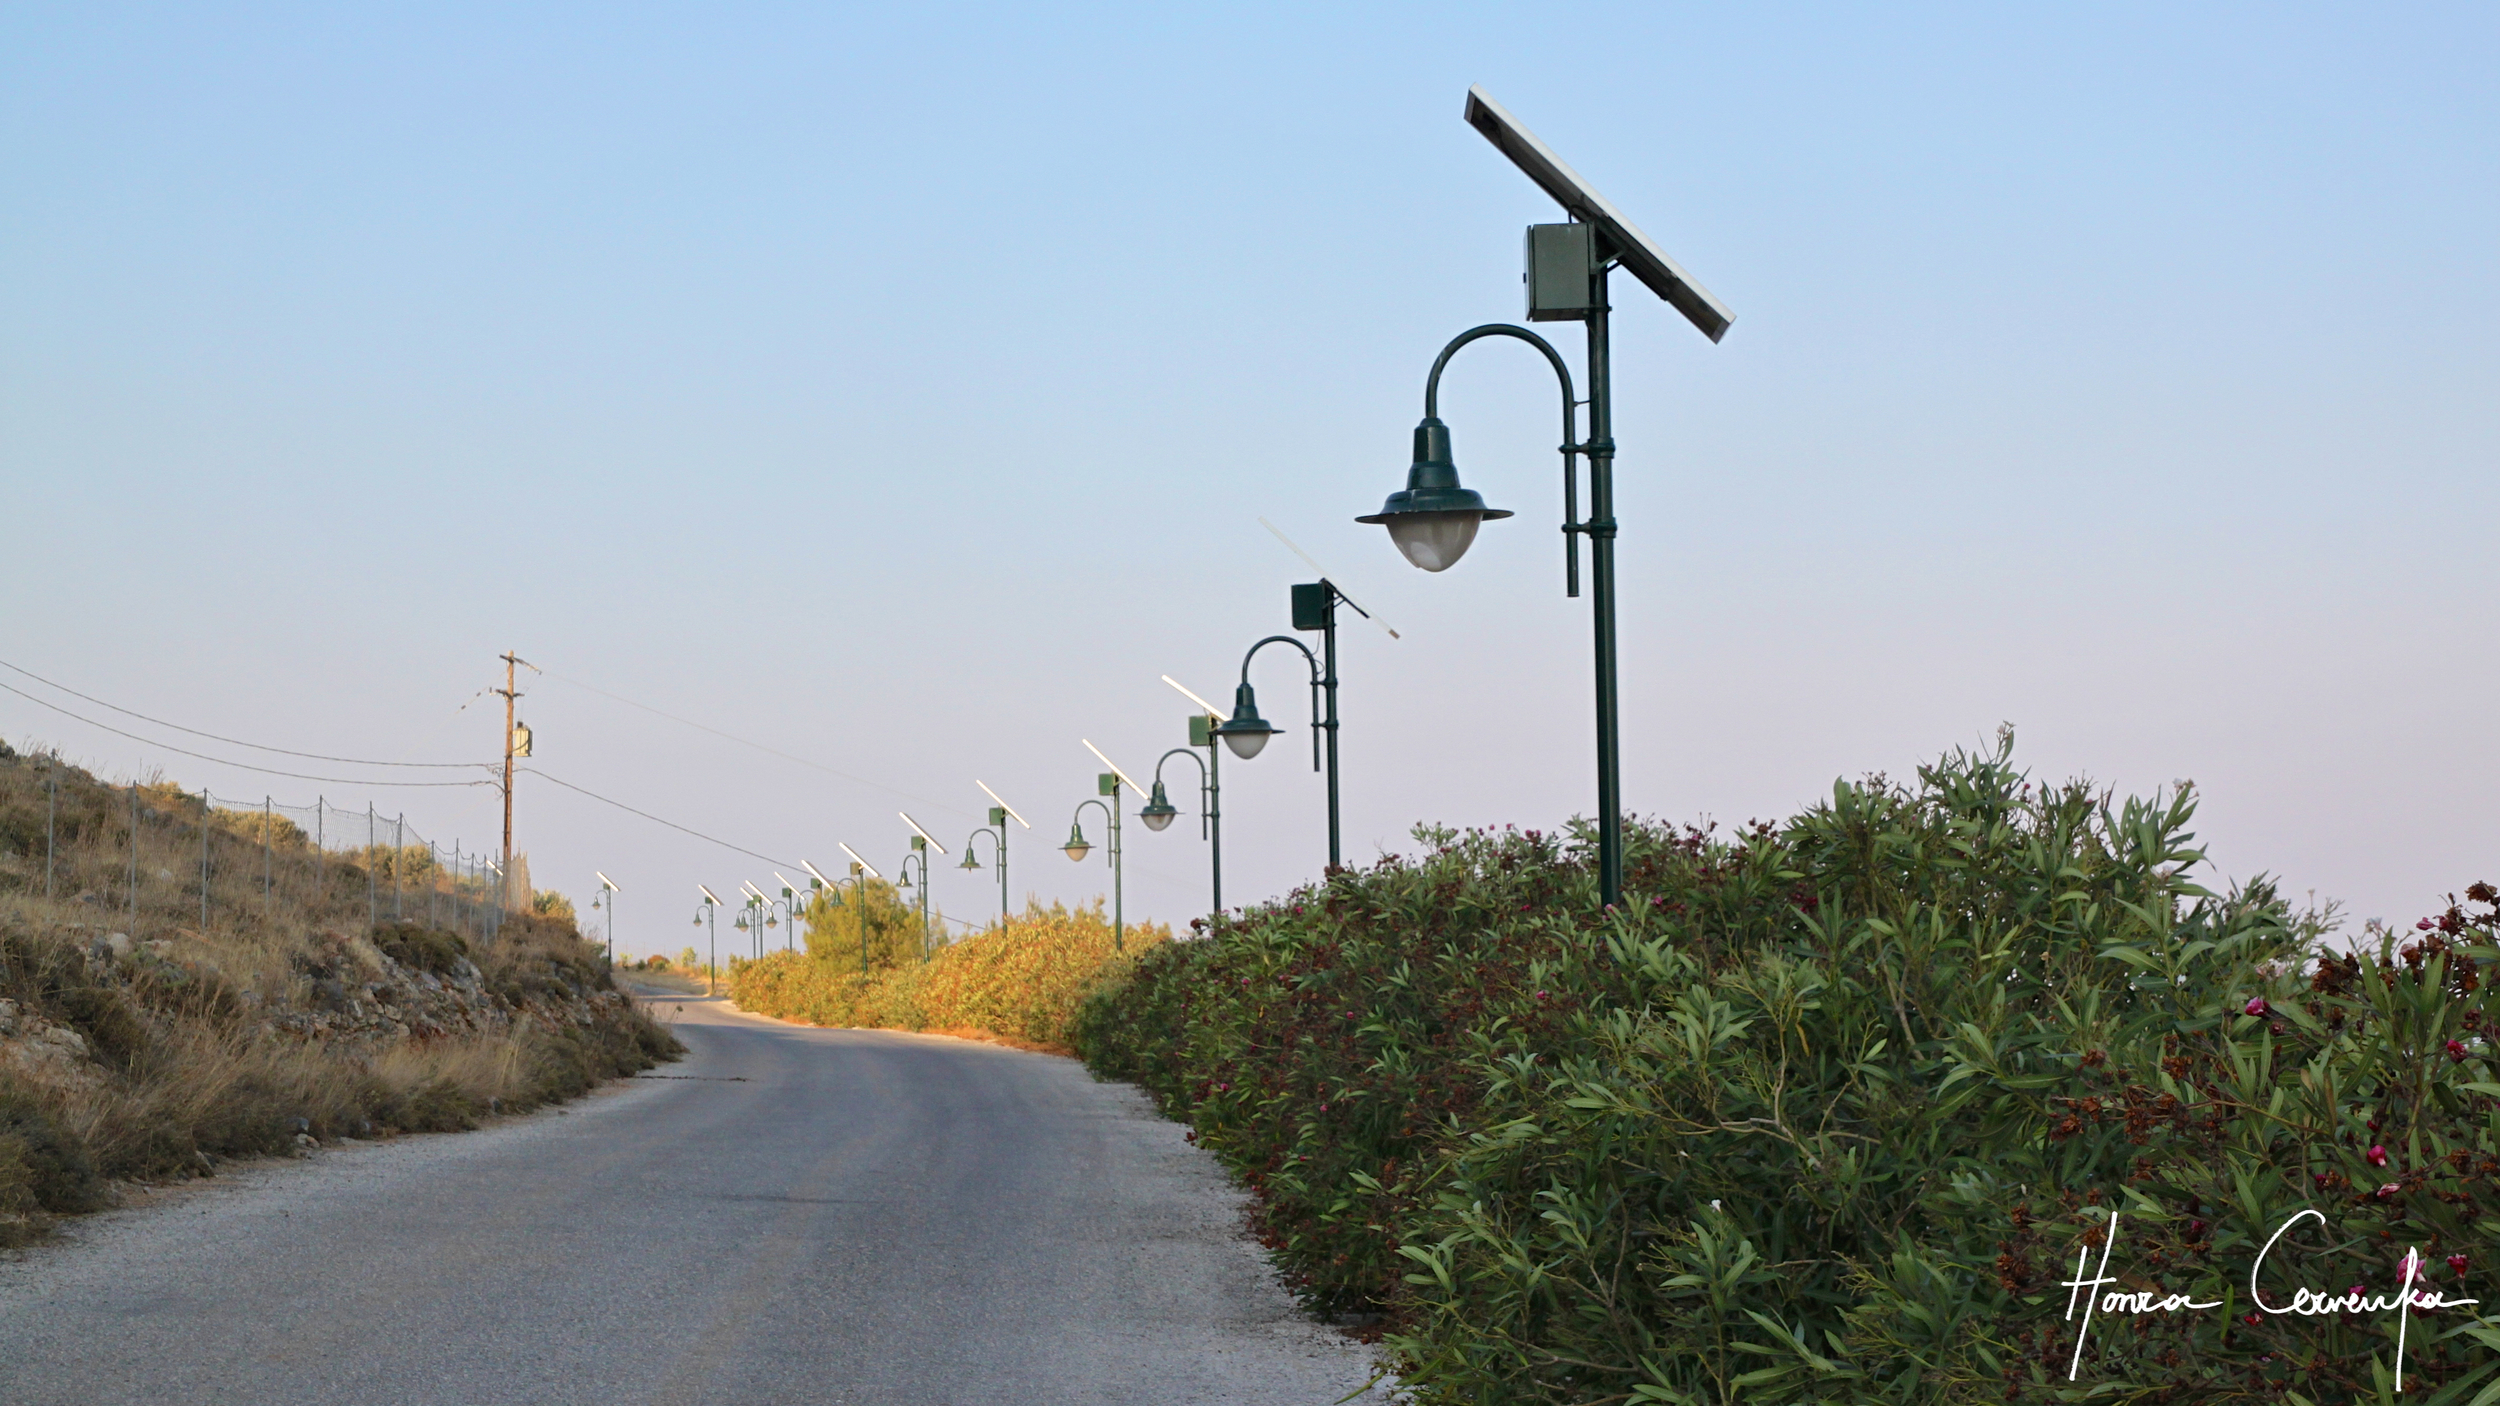 Some cool solar-powered lights up the road to the monastery.